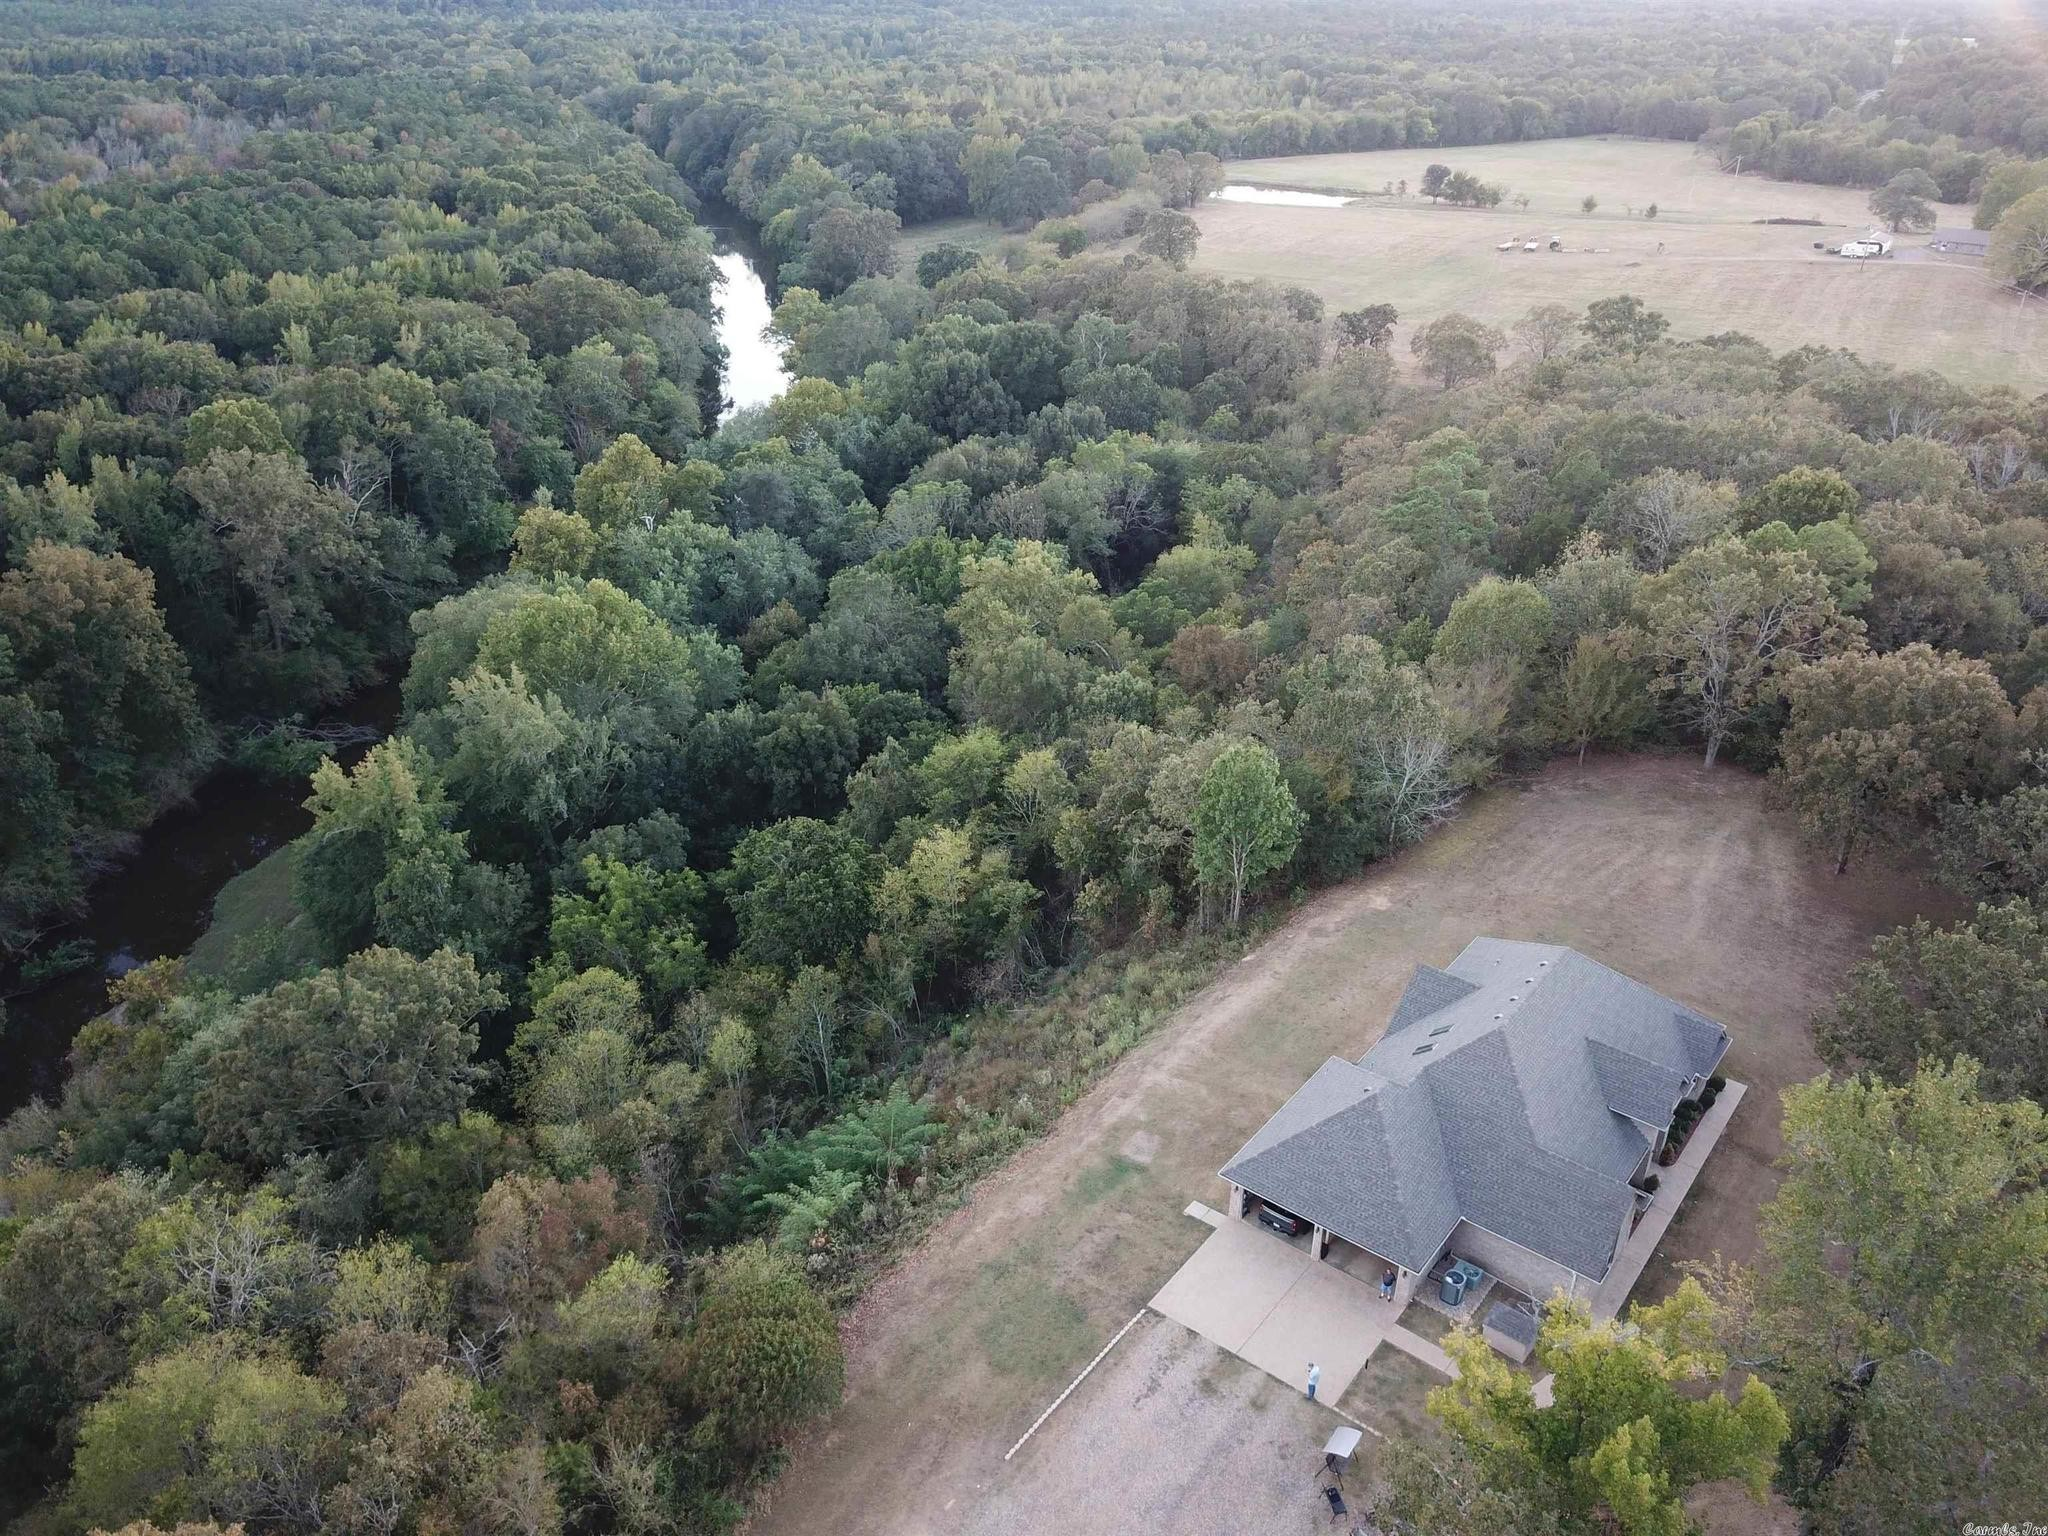 4-Bedroom House In Waldron